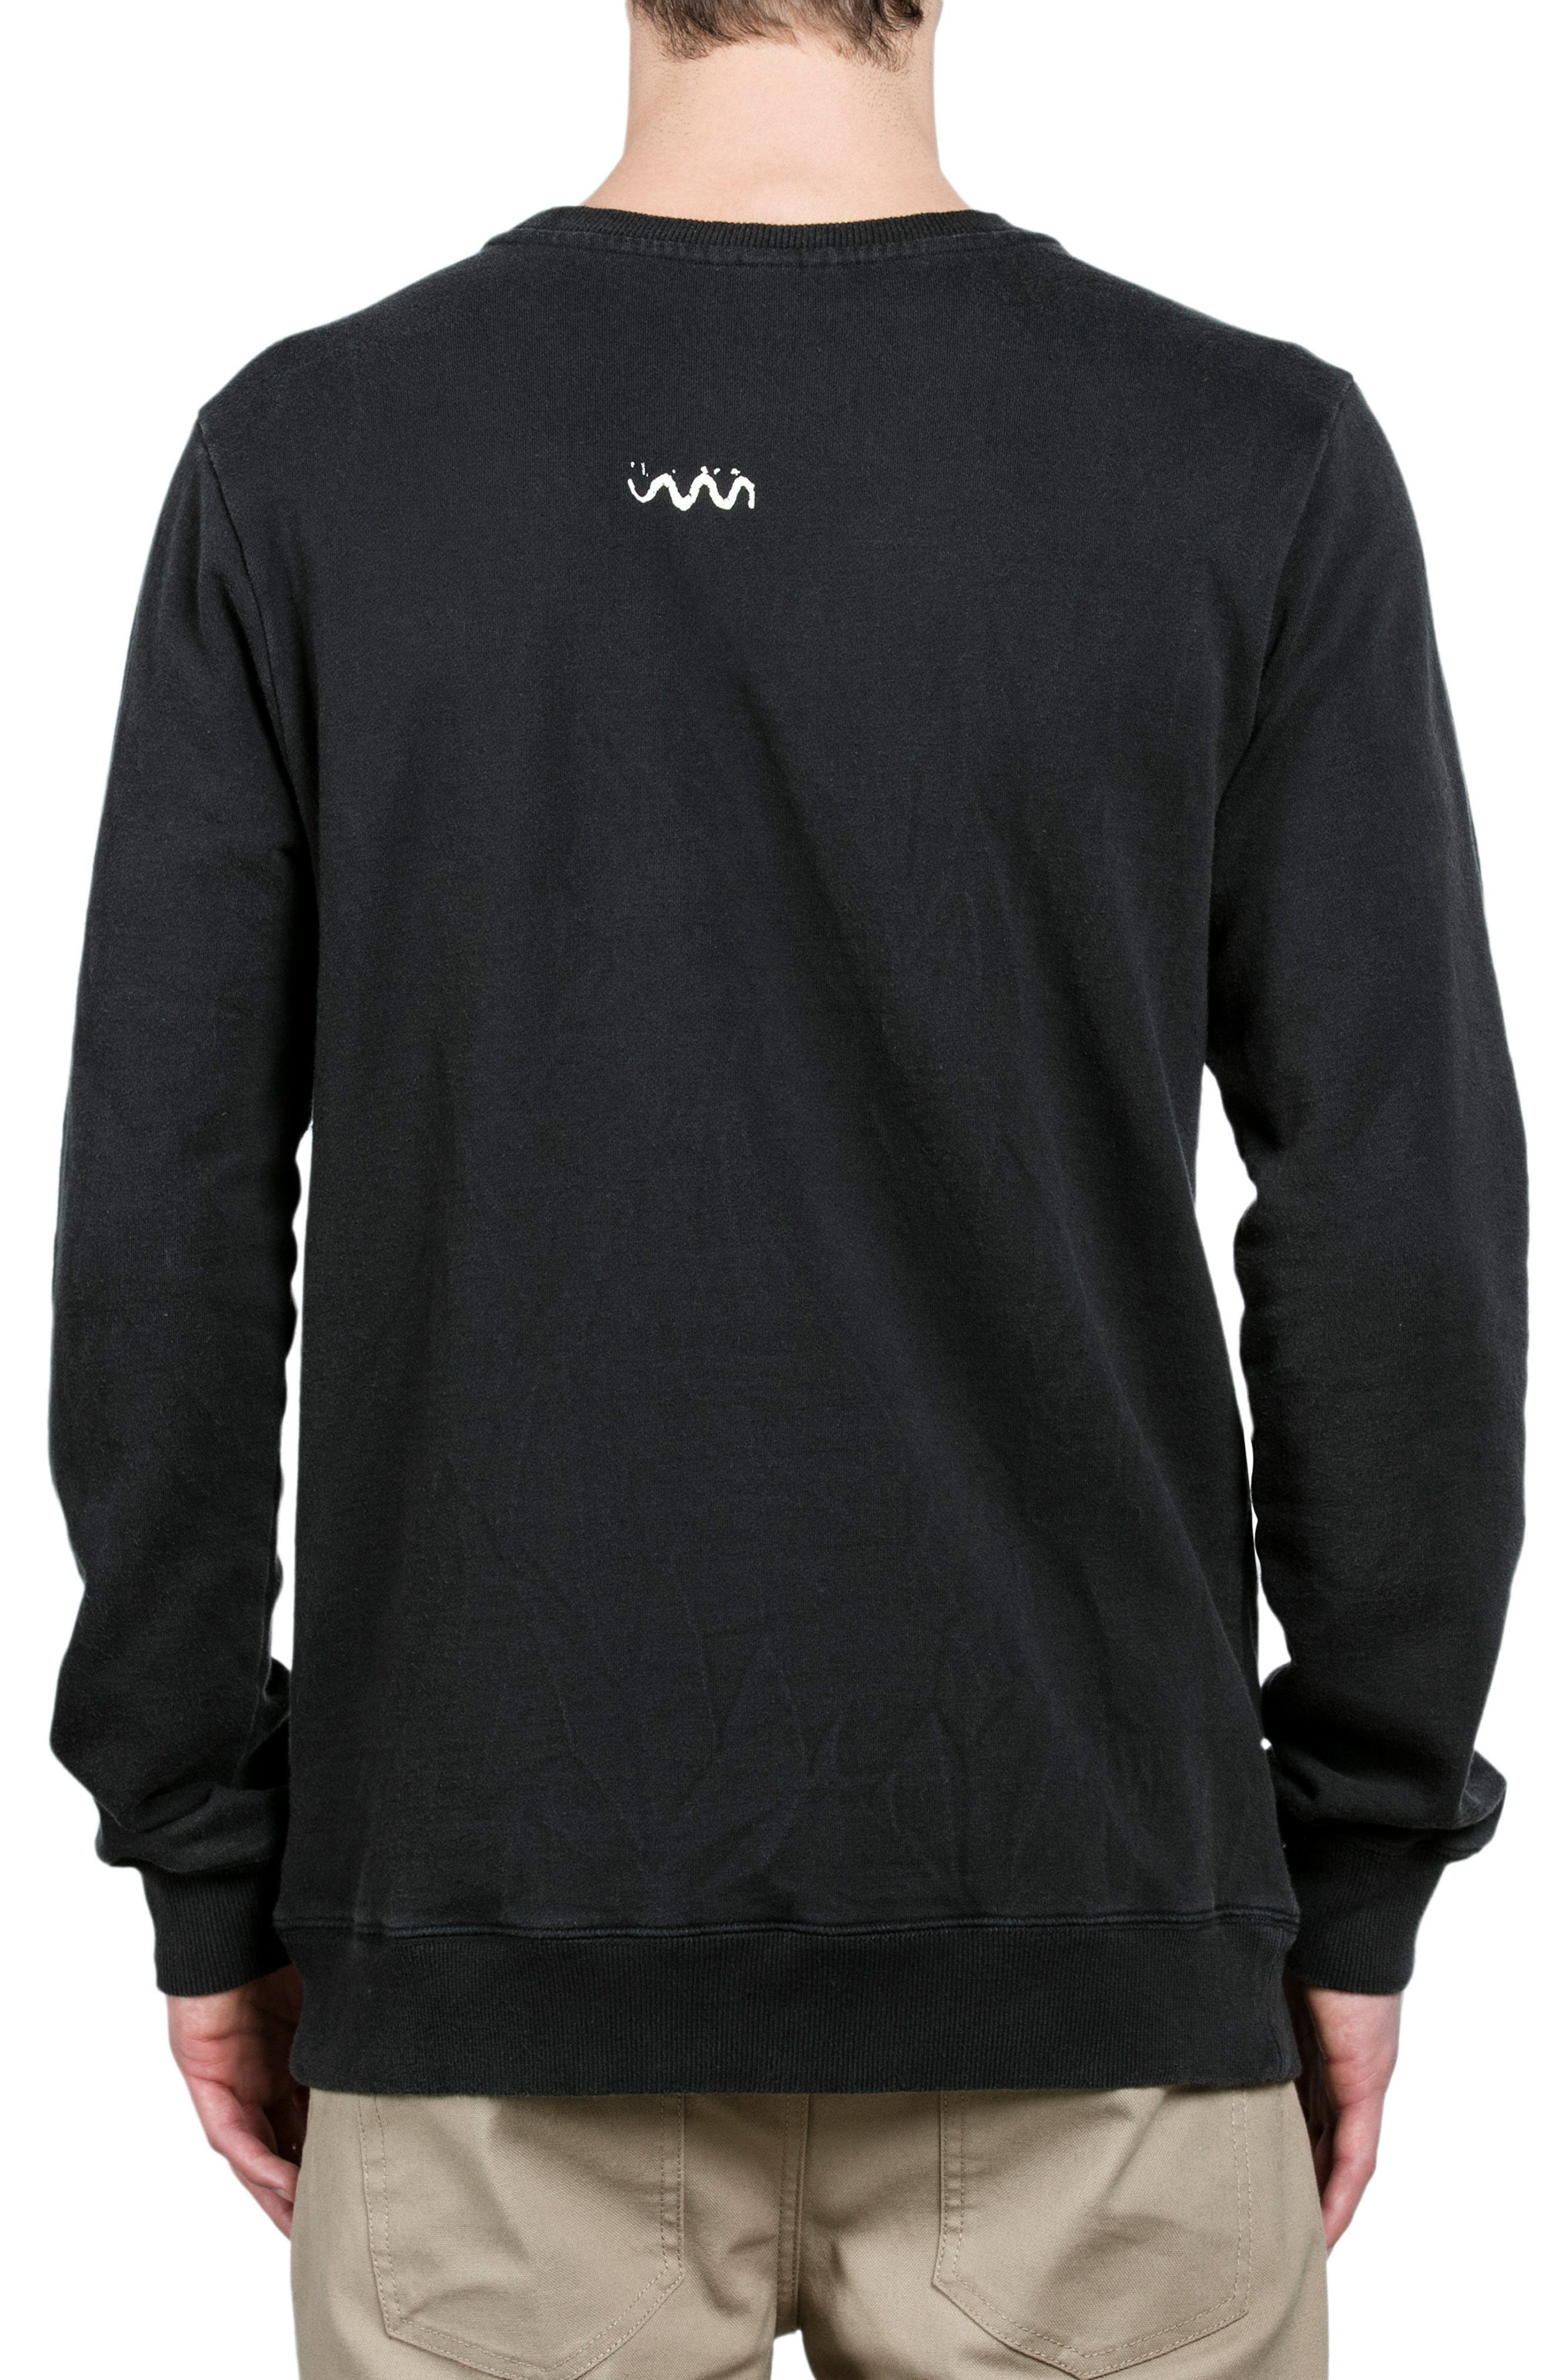 Reload Sweatshirt,                             Alternate thumbnail 3, color,